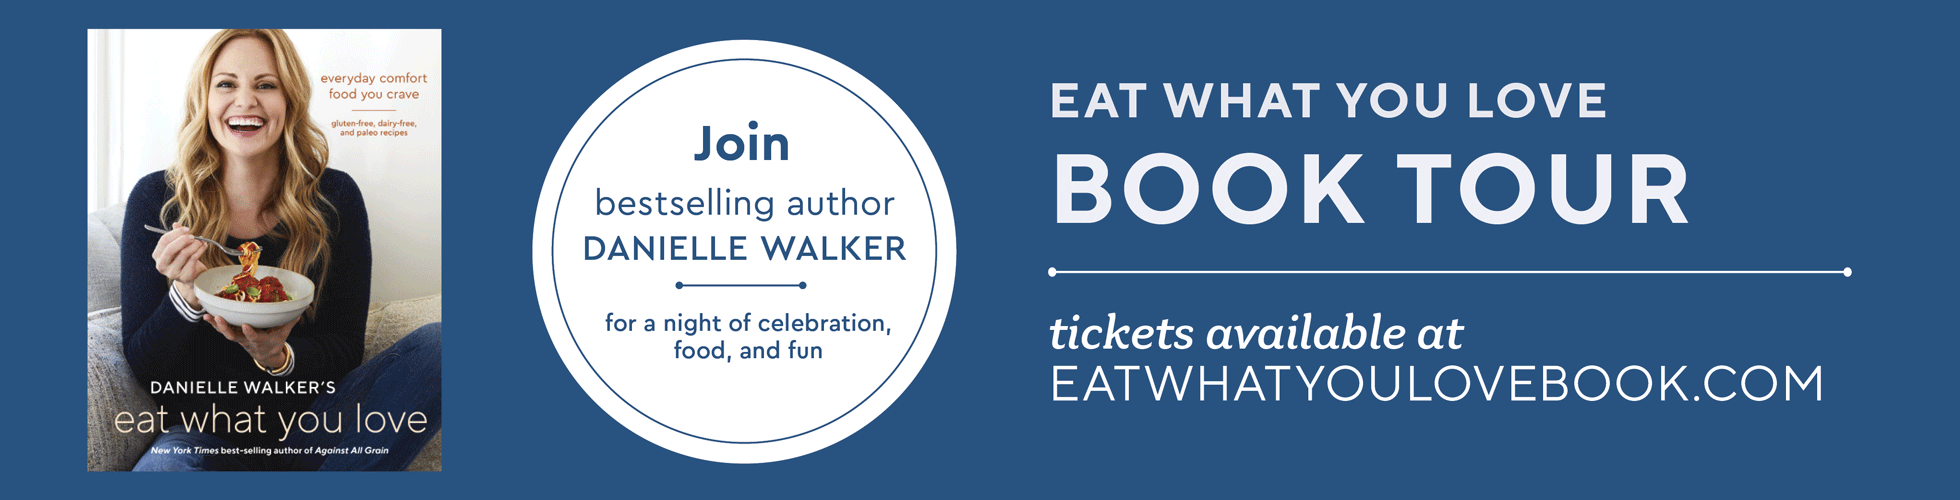 Eat What You Love Book Tour